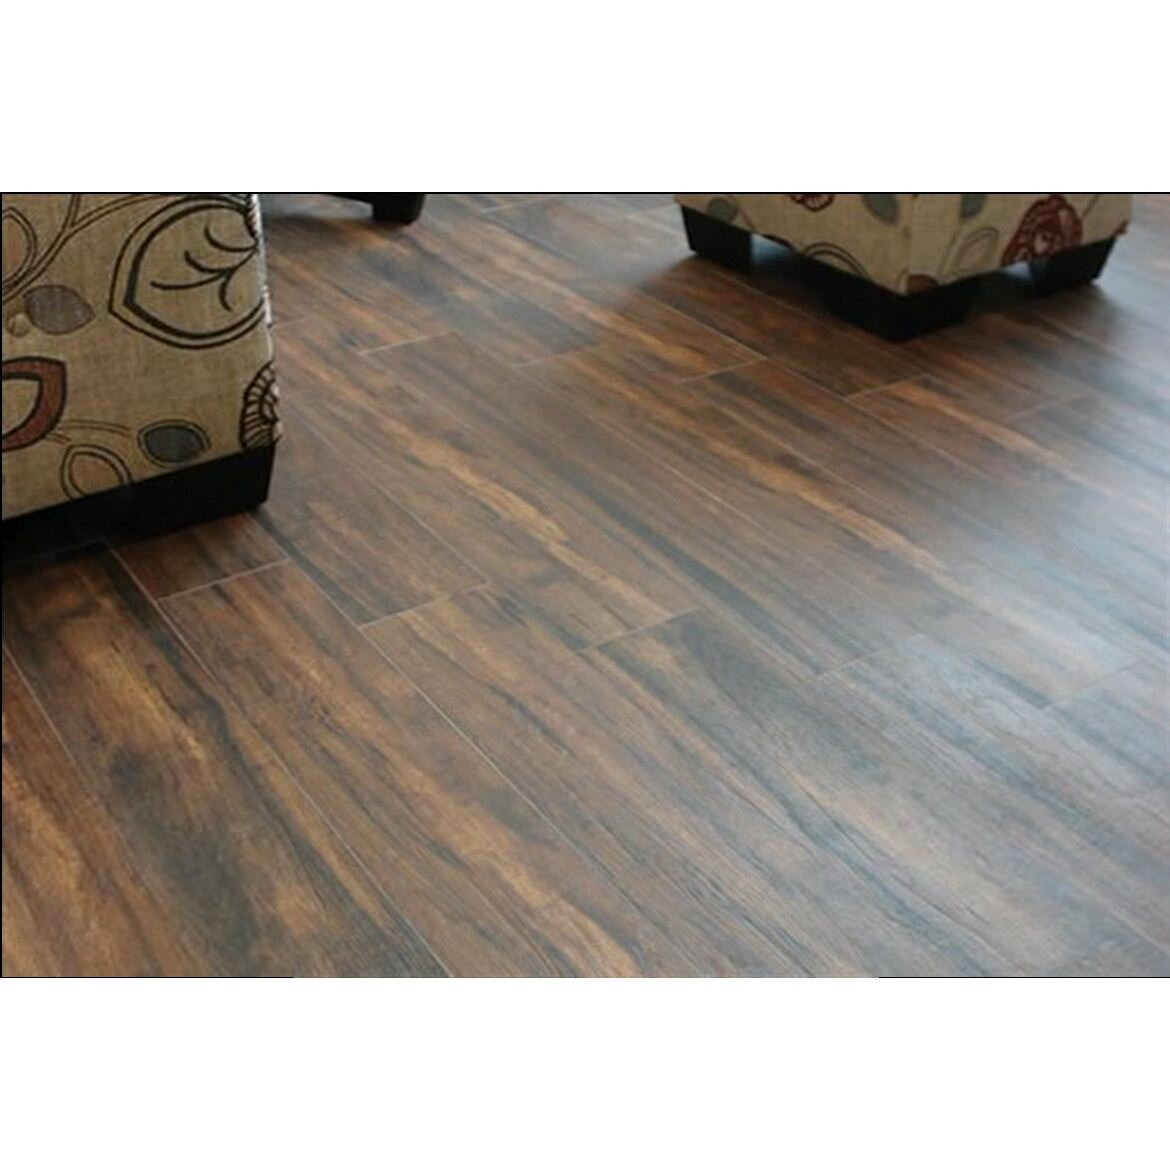 "MSI Botanica Teak 6"" x 24"" Porcelain Wood Tile in Glazed"